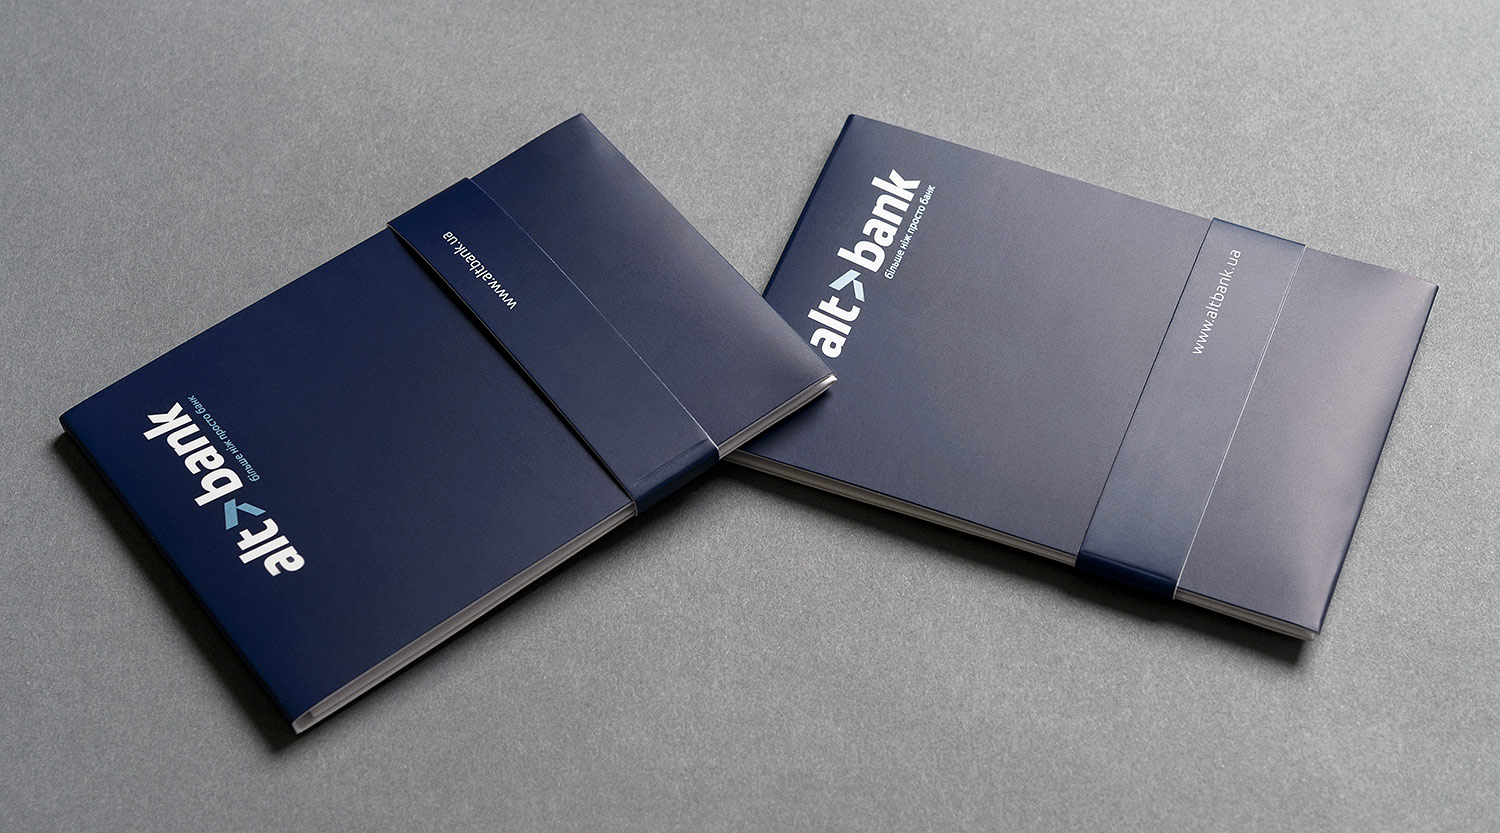 Compact packaging for Altbank credit cards. Design and production of cardholders.